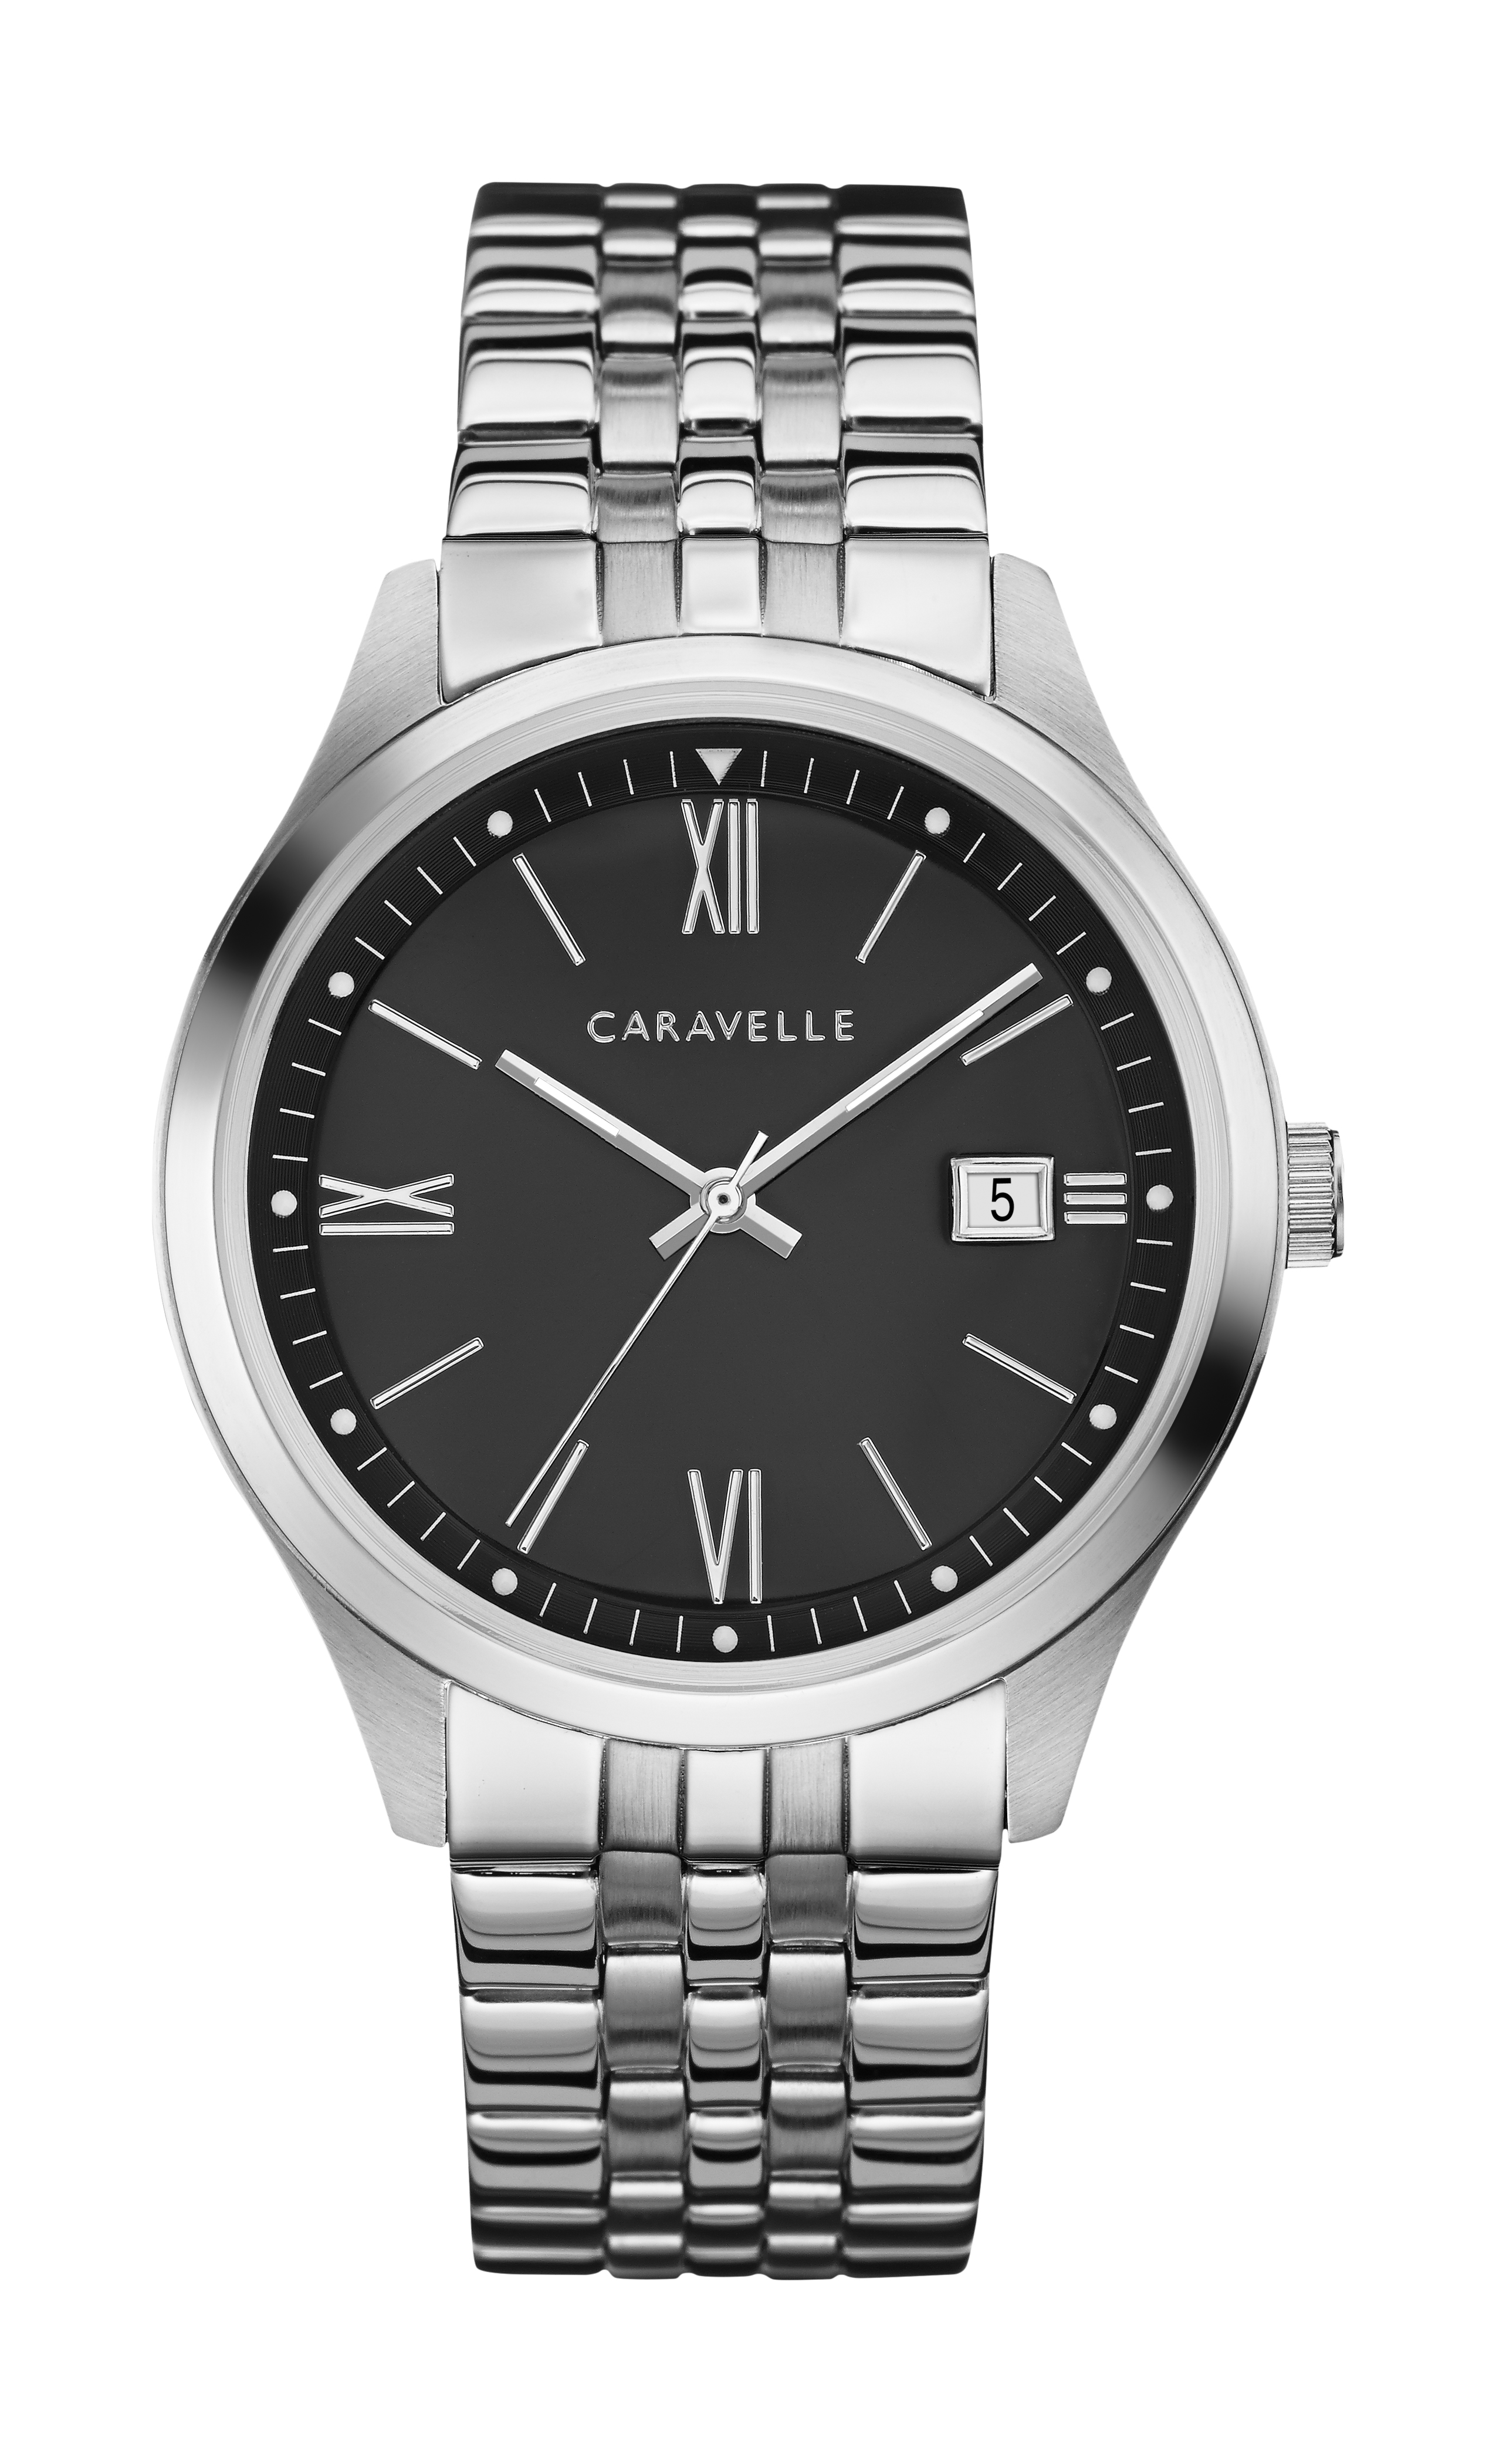 NY Watch for Man - Stainless steel & Black dial with roman numerals